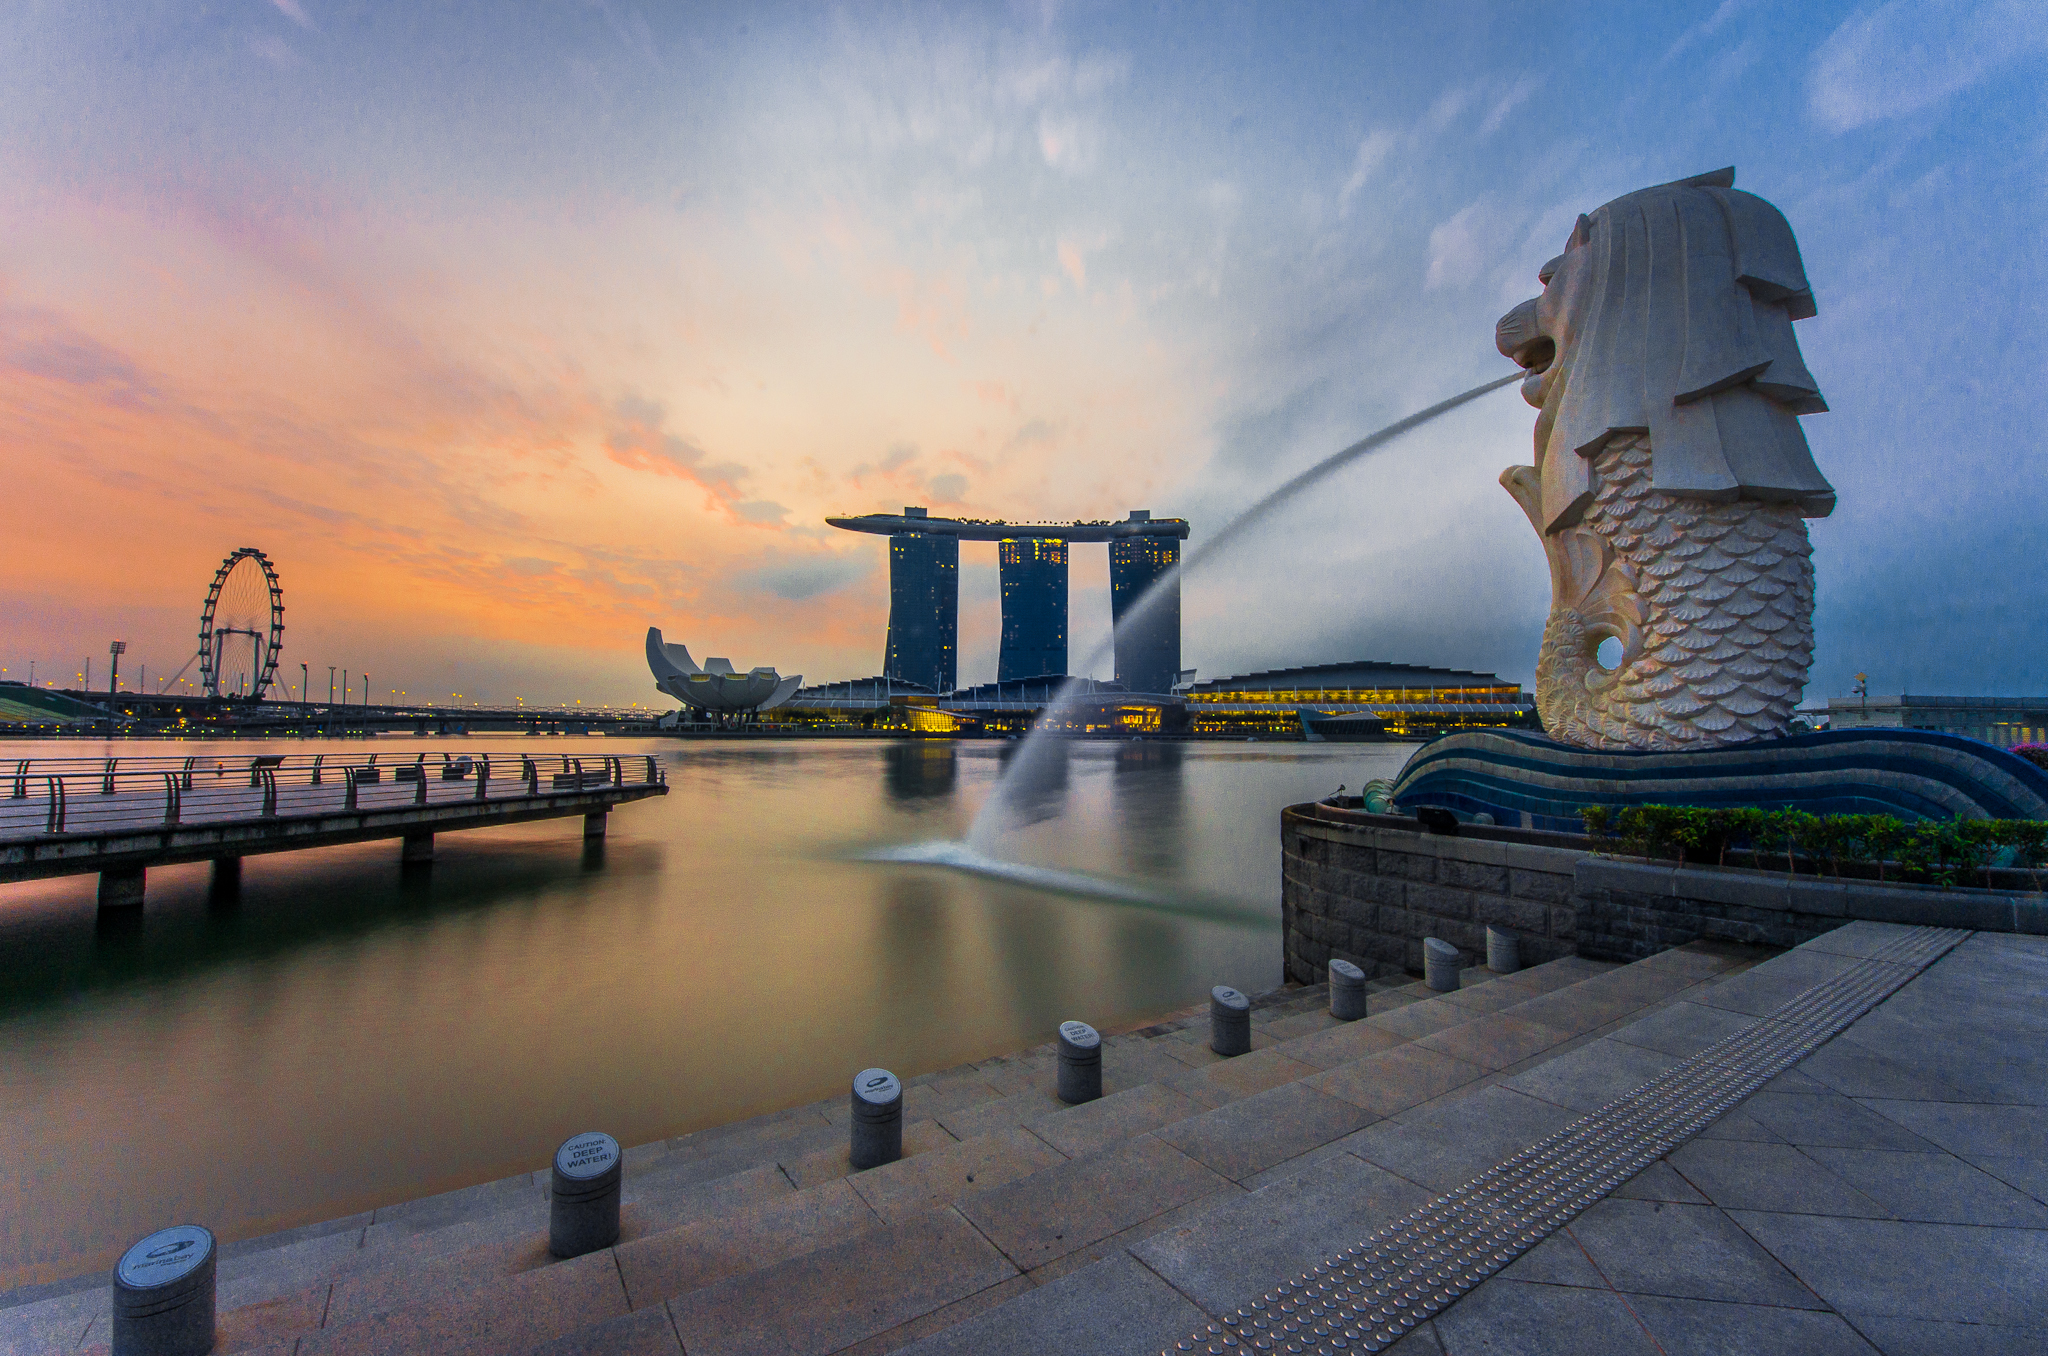 Singapore Loses Mantle as World's Easiest Place to do Business